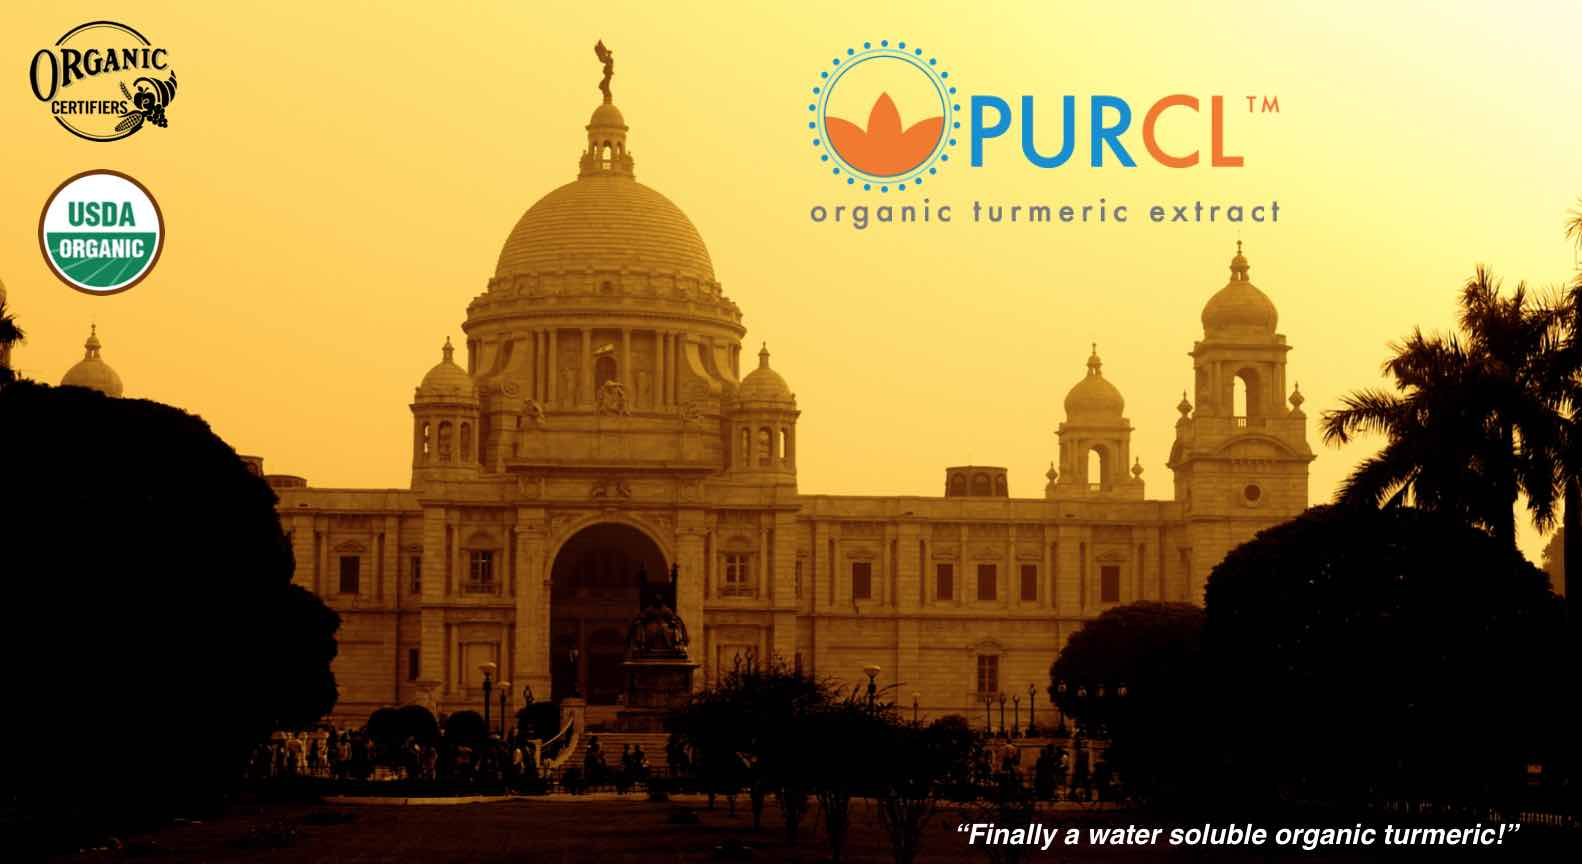 Organic Turmeric Extract Supplier PurCL